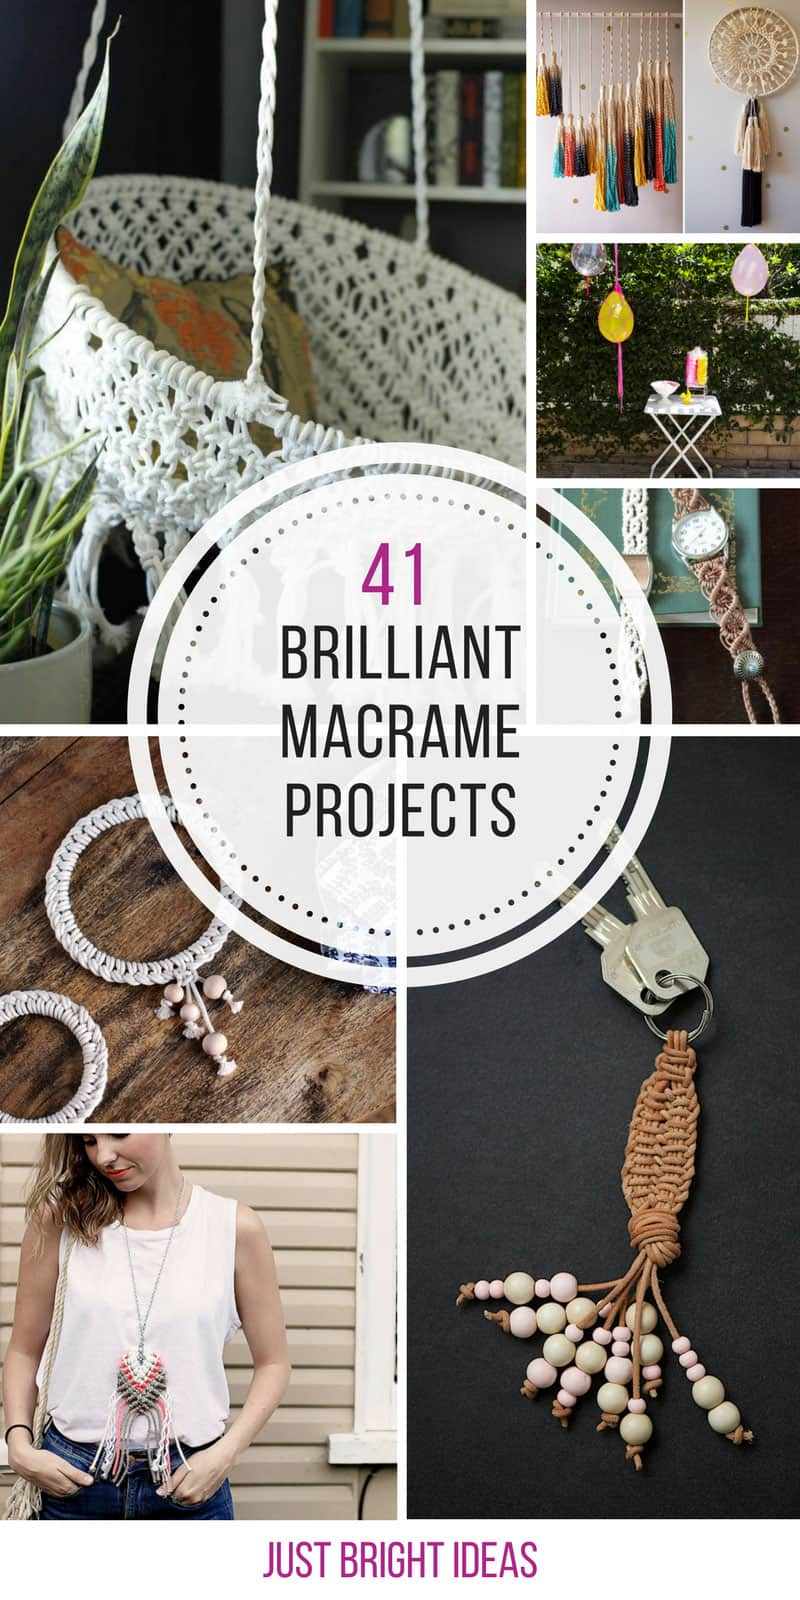 These macrame projects are totally amazing! Thanks for sharing!